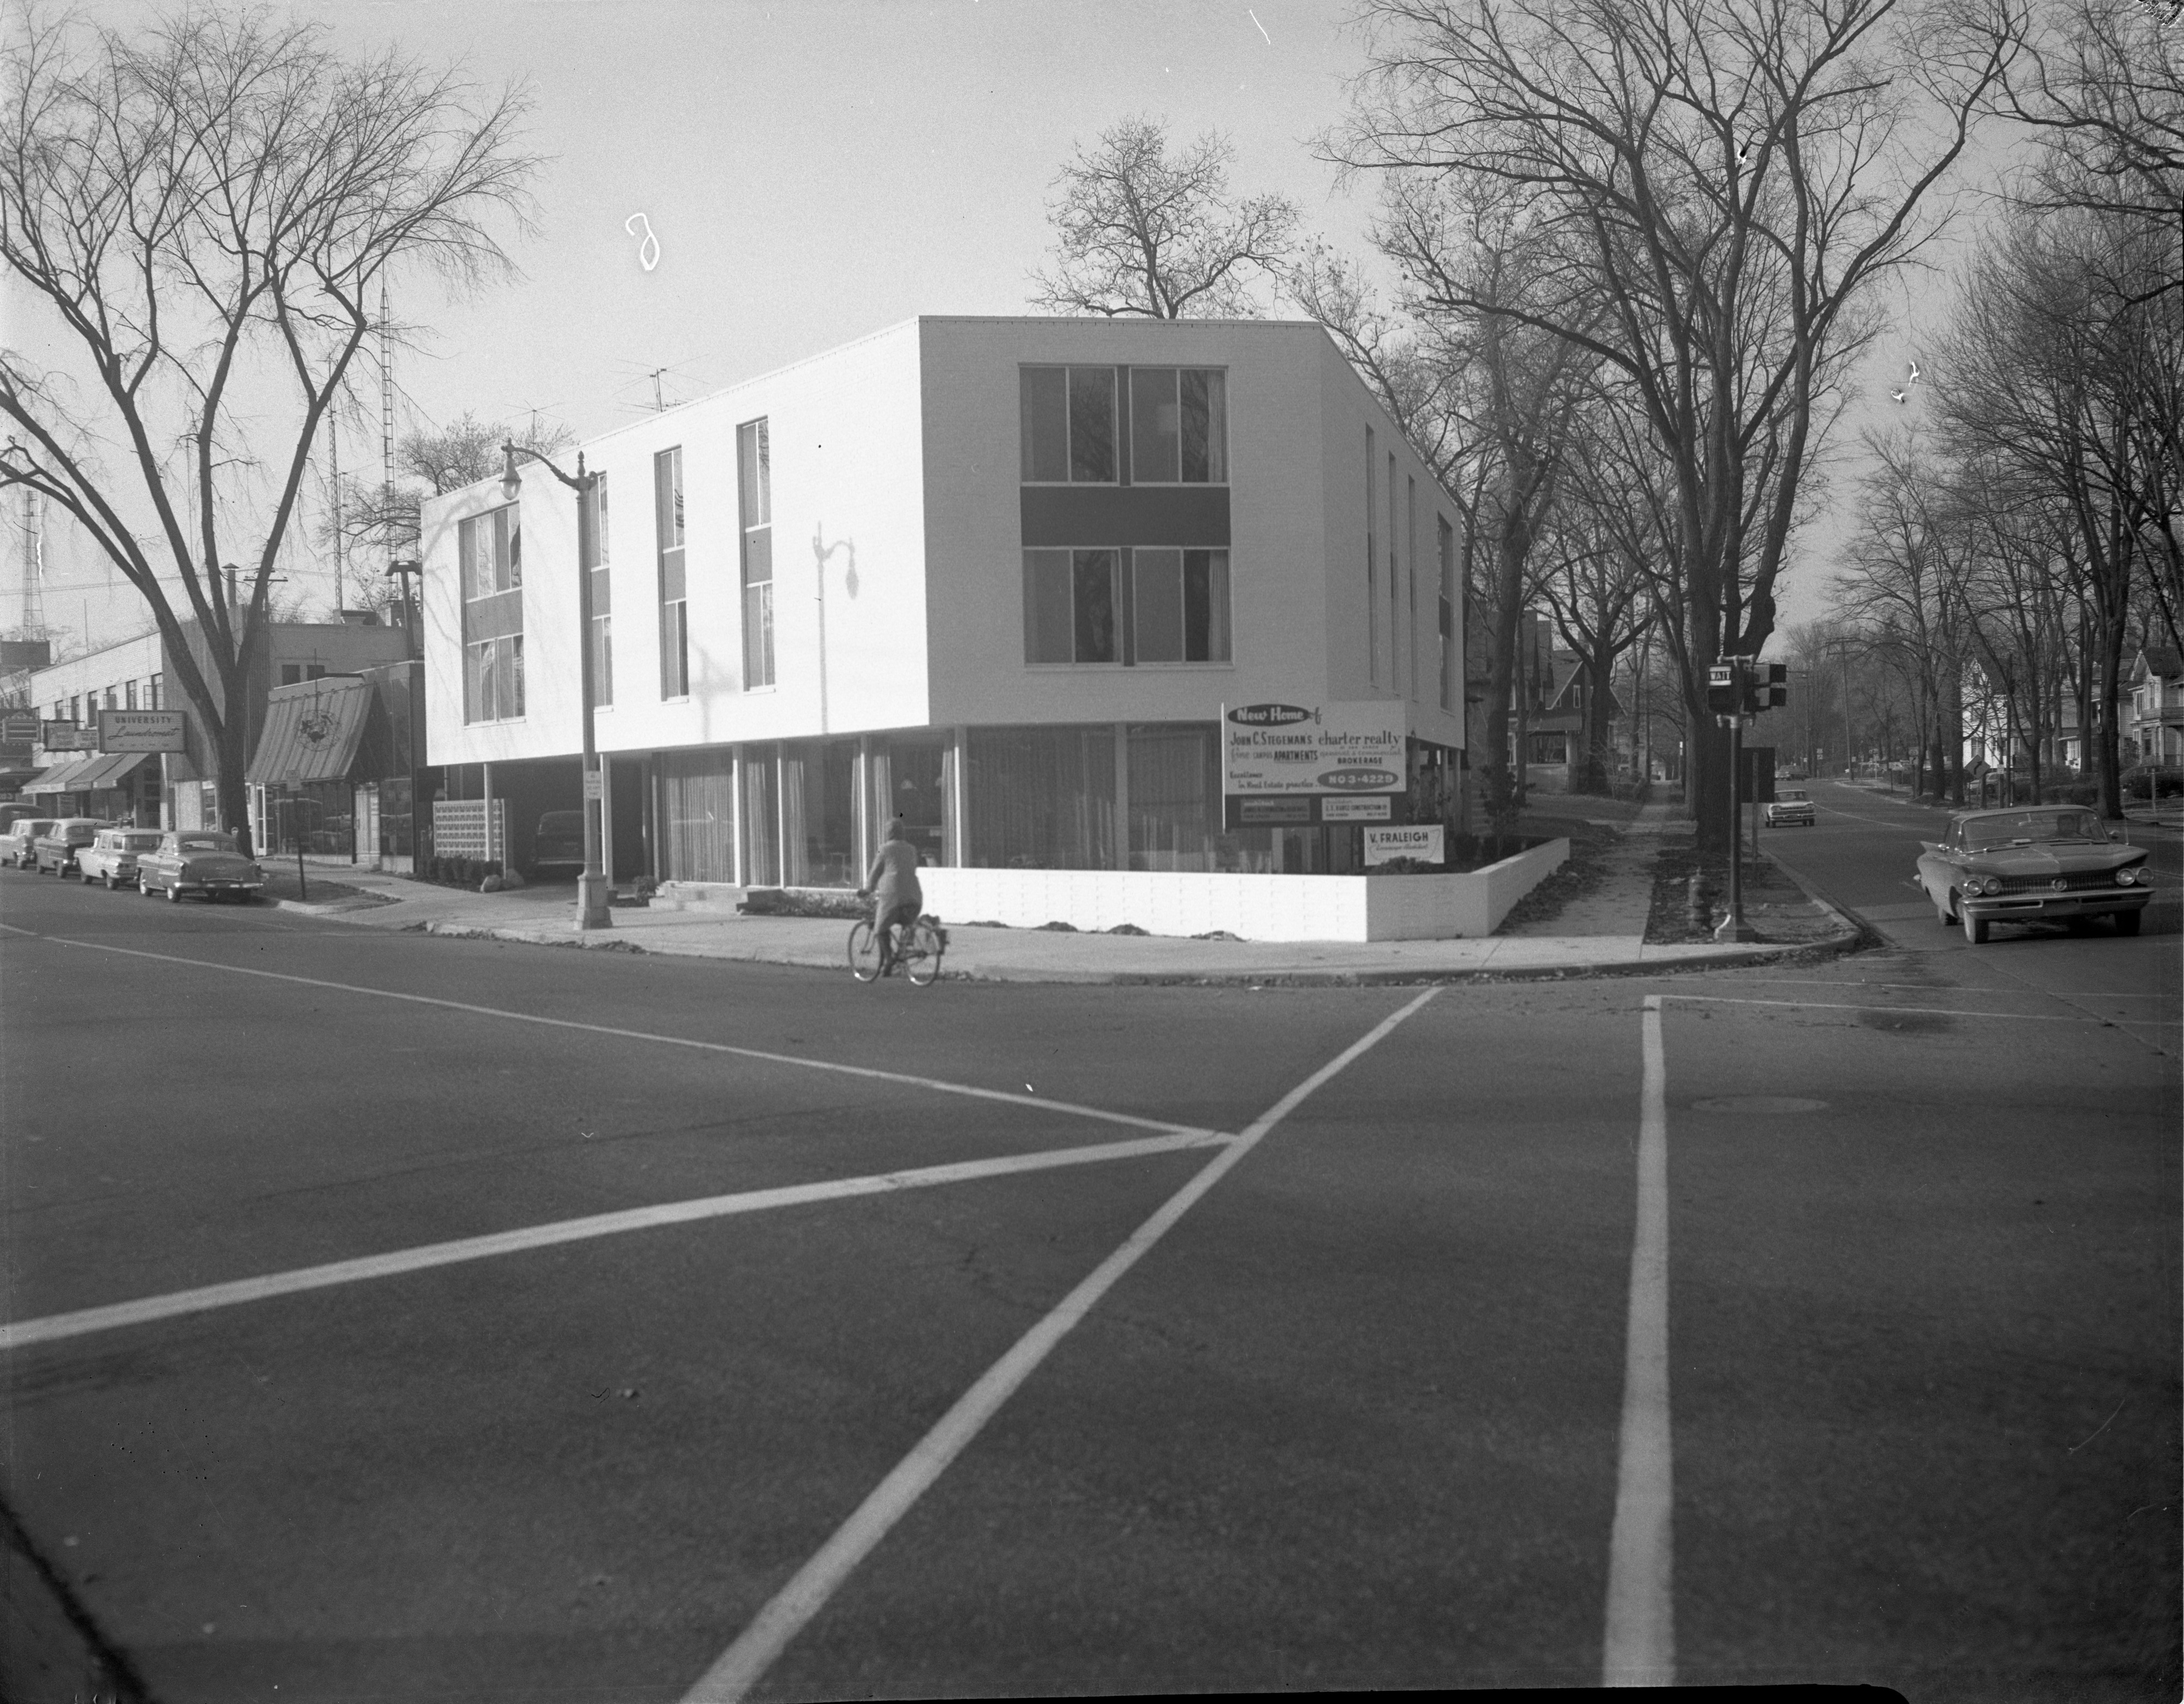 The Charter House - Exterior, December 1961 image